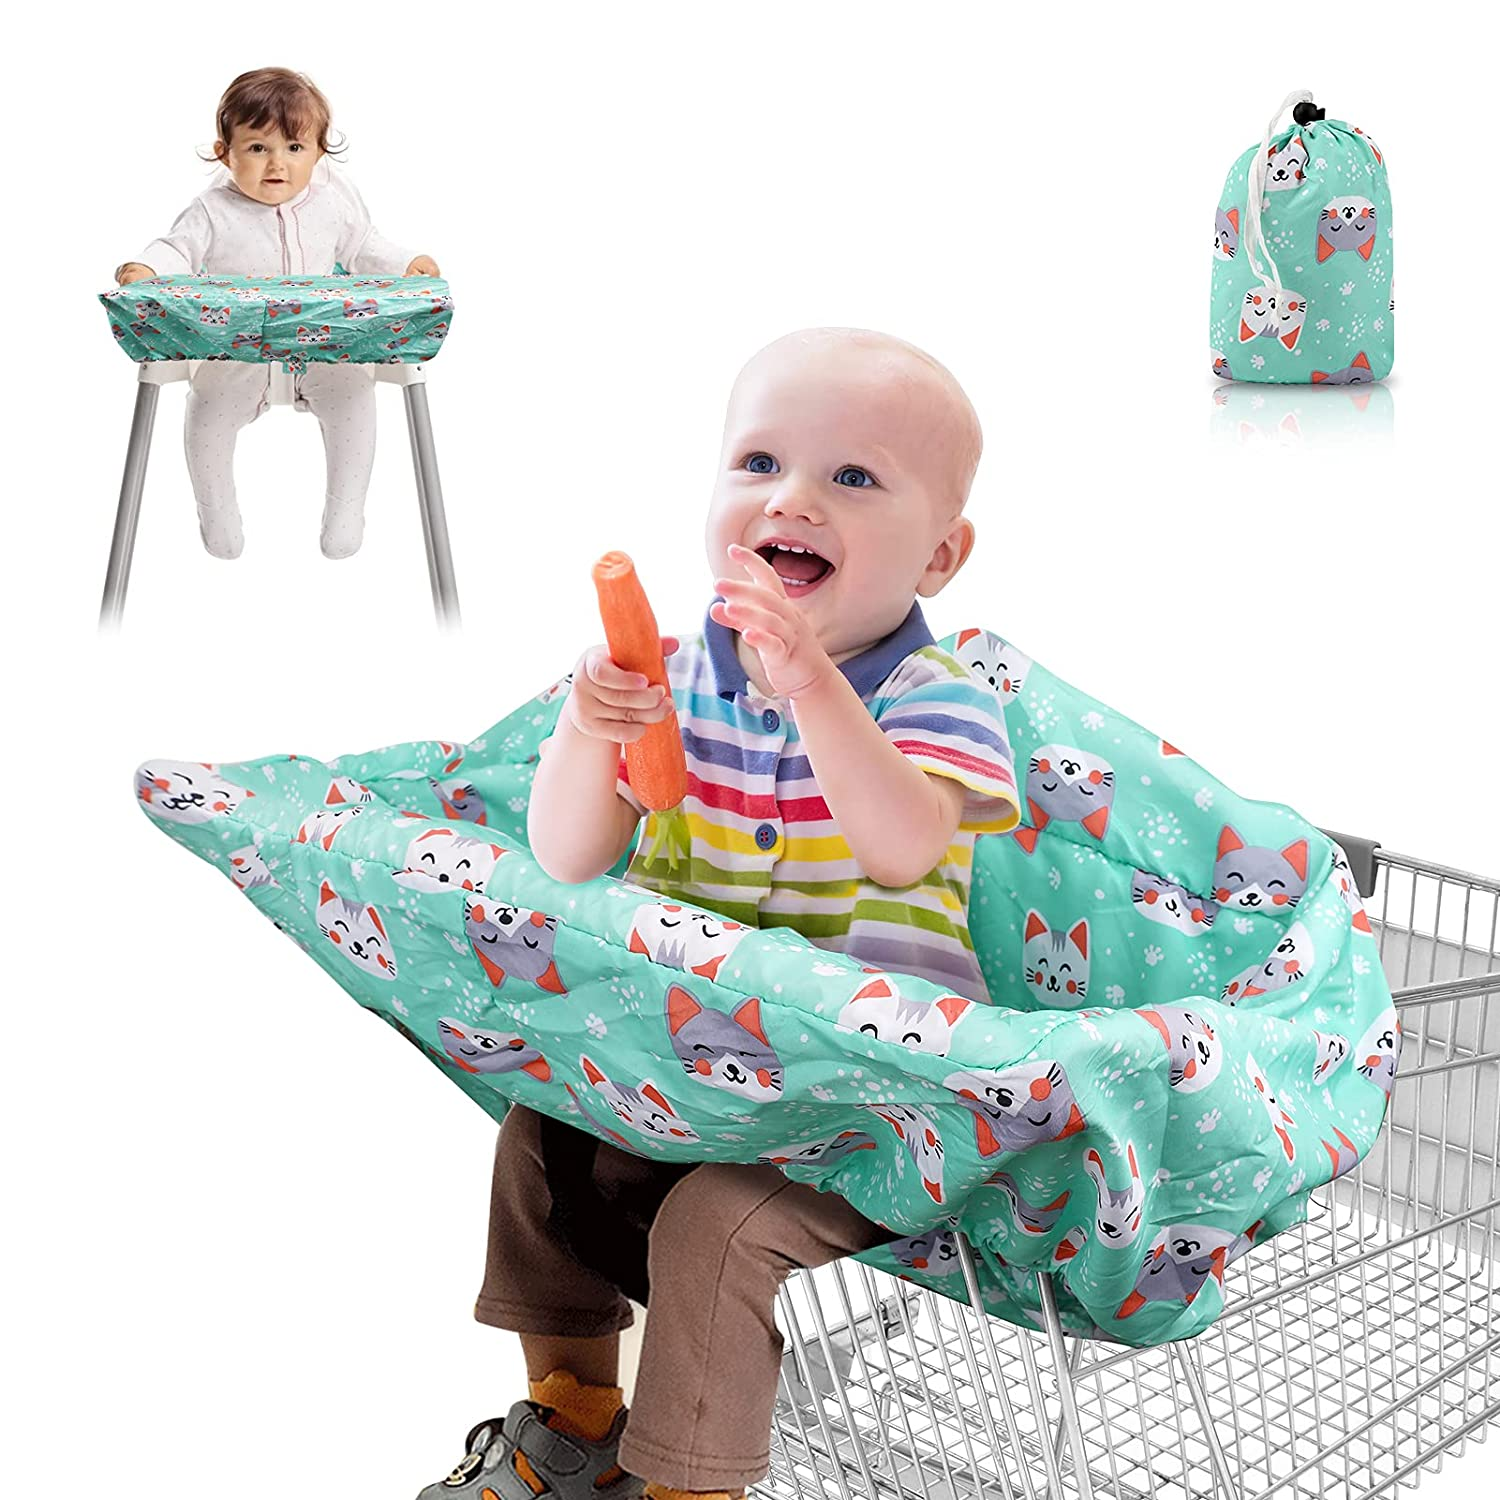 Lybile 2-in-1 Shopping Cart Cover and High Chair Cover for Baby Toddler Grocery Cart Cover Seat Pad Full Safety Harness Trolley Highchair Cover Machine Washable Baby Trolley Cover Foldable Storage